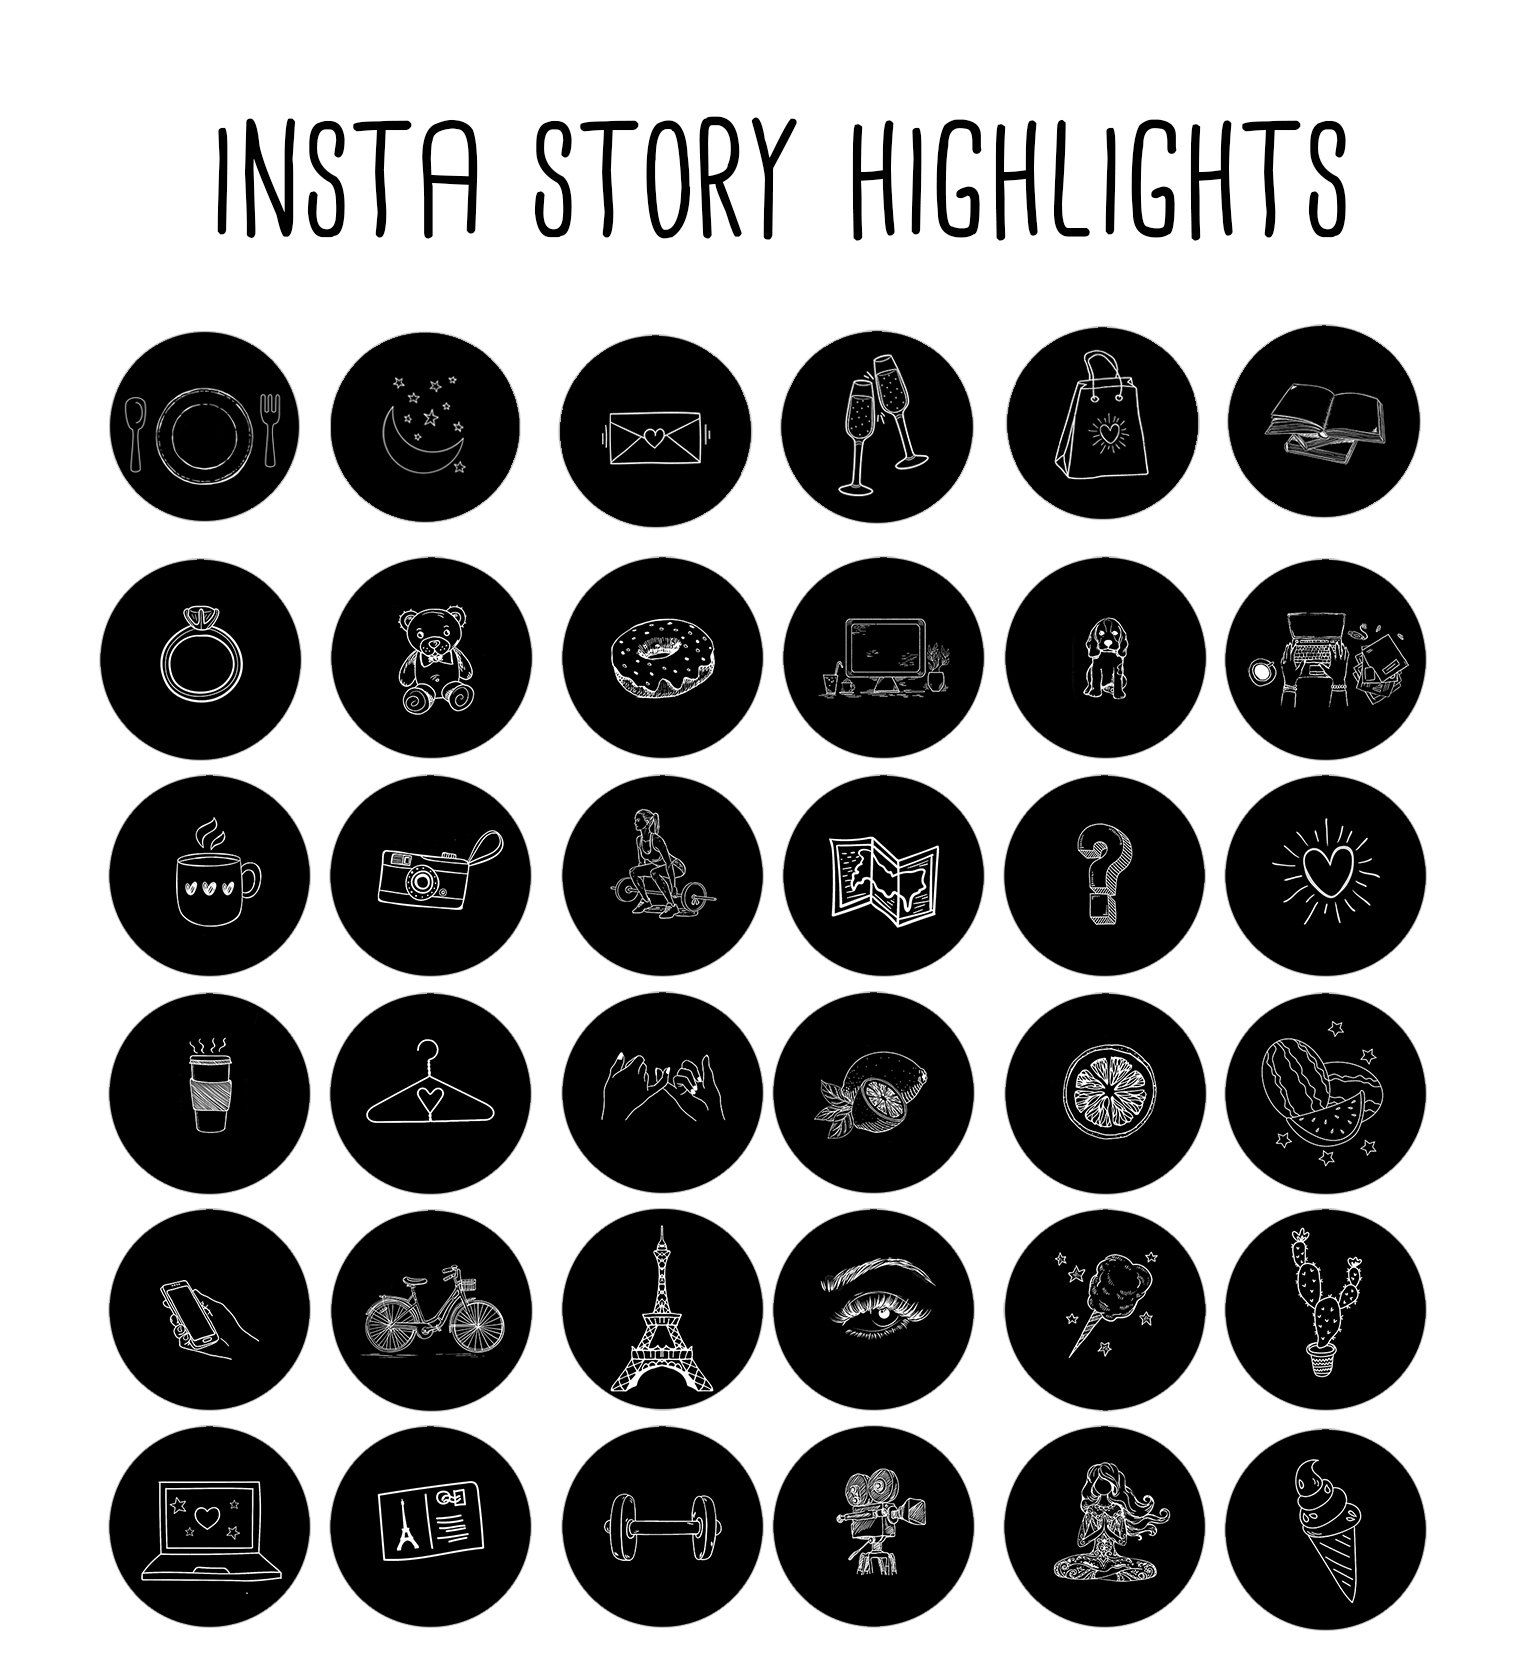 200+ Instagram Story Highlights Icons Covers Black and